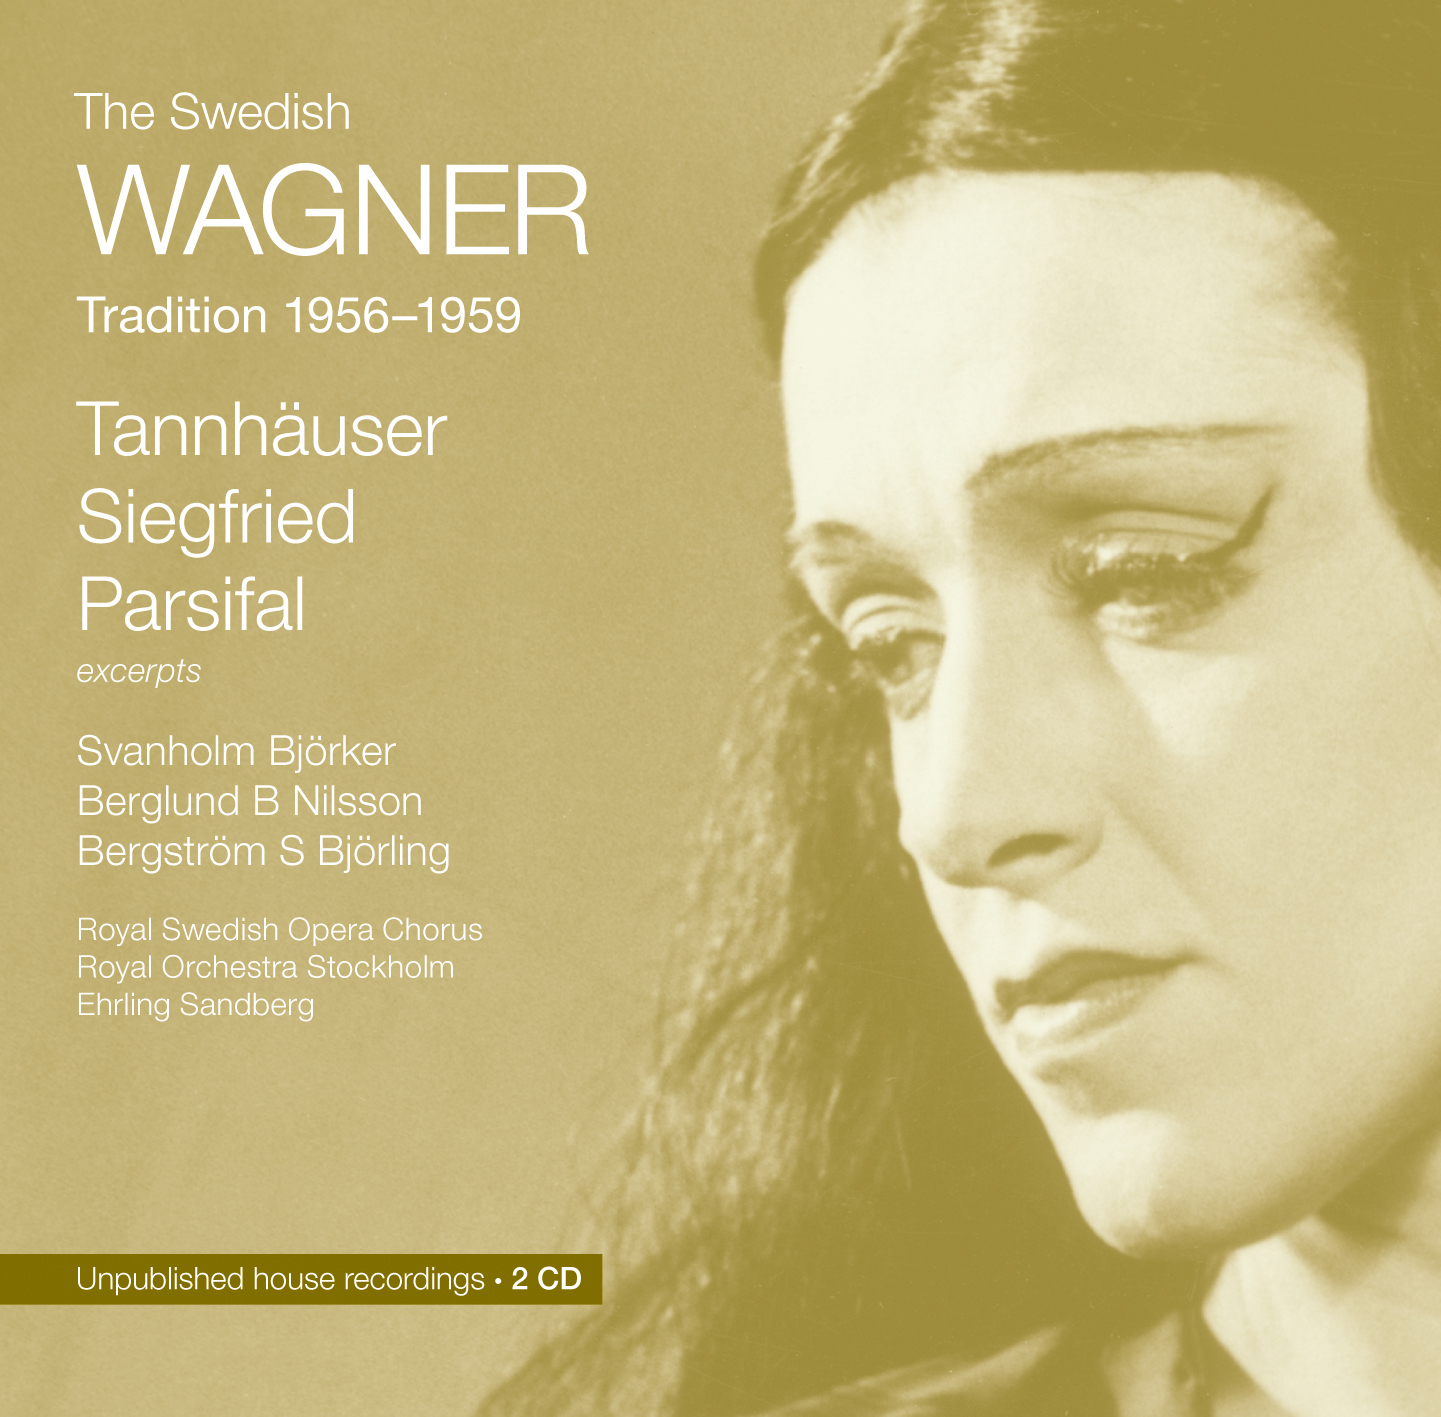 Wagner, Vol. 7